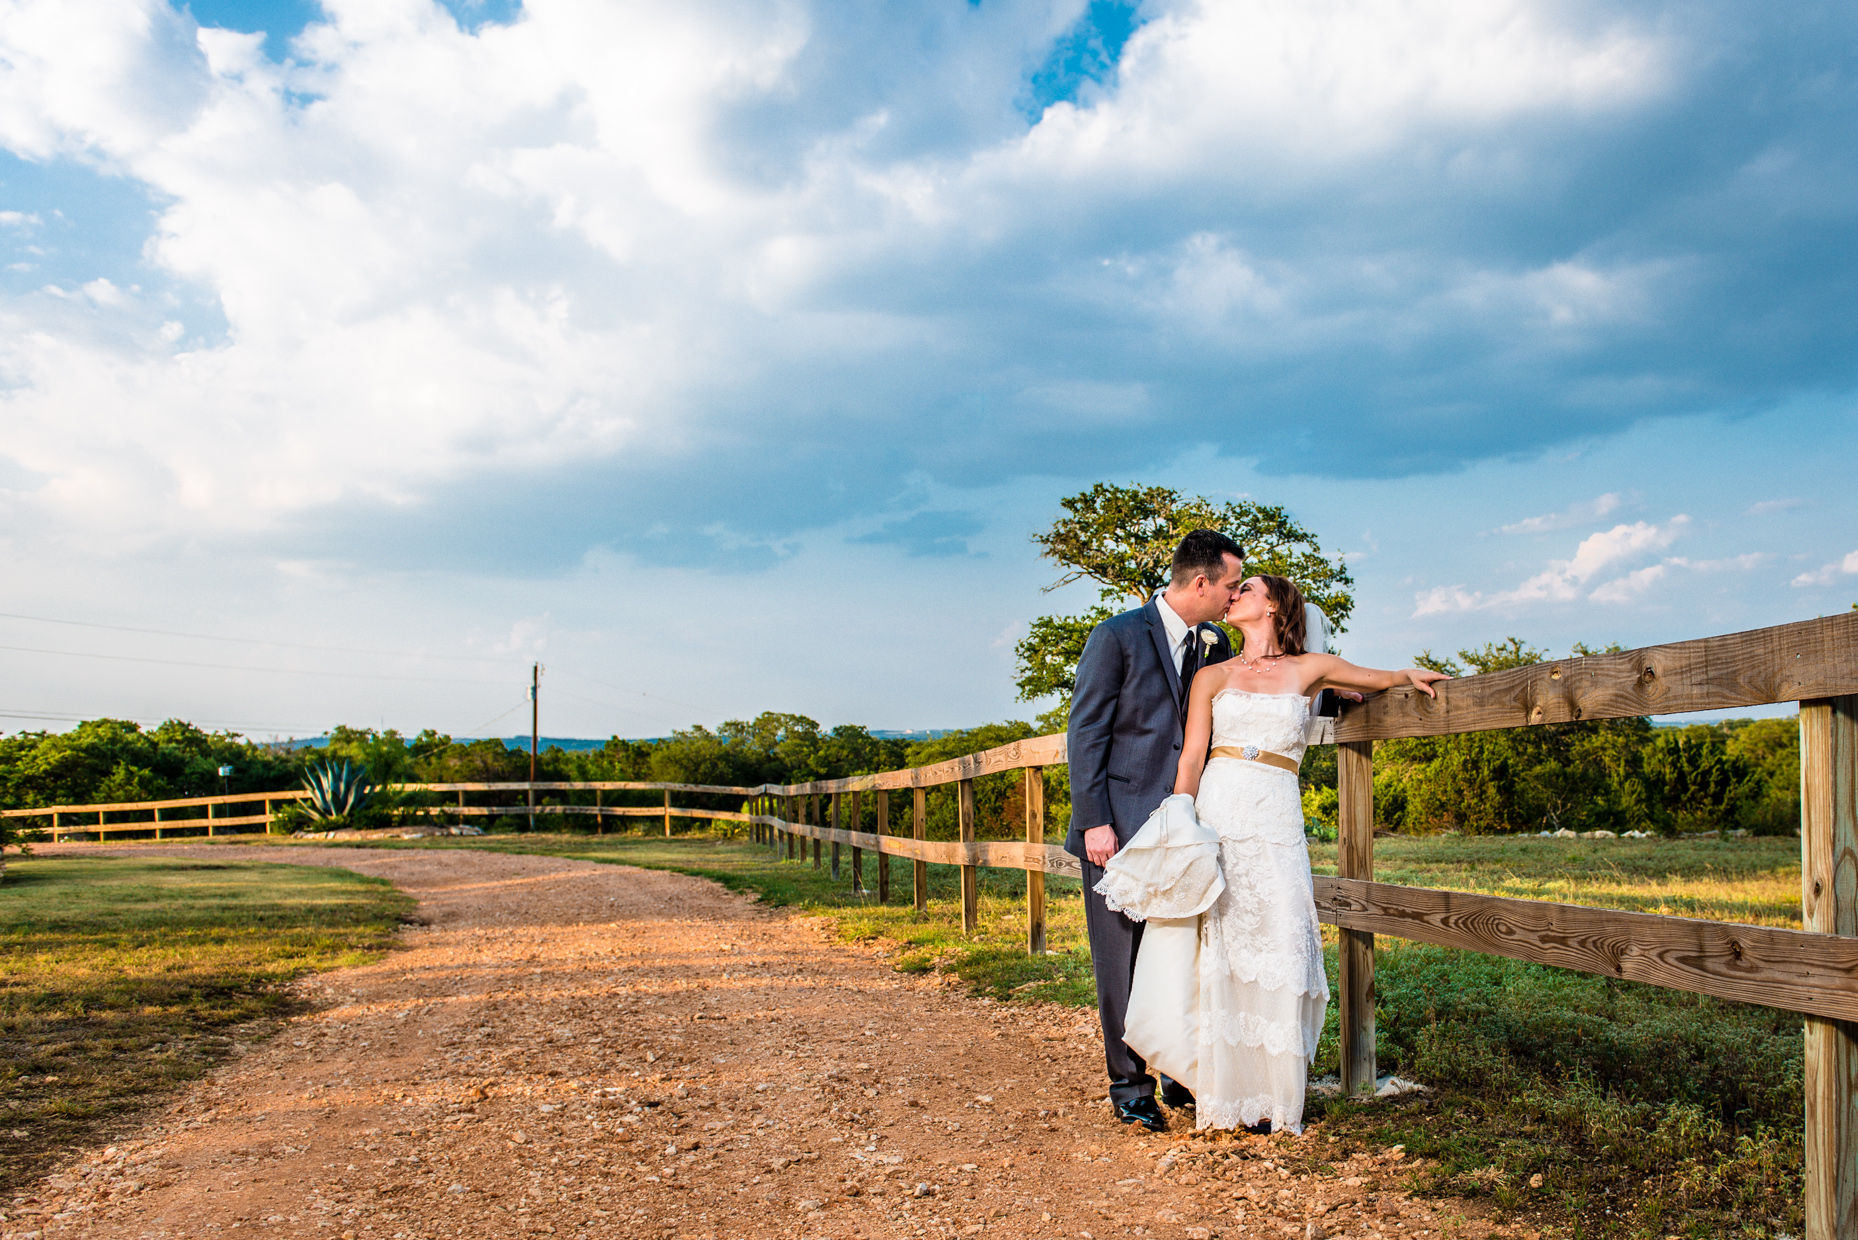 Austin-Wedding-Photographer-Romantic-Texas-Memory-Lane.jpg